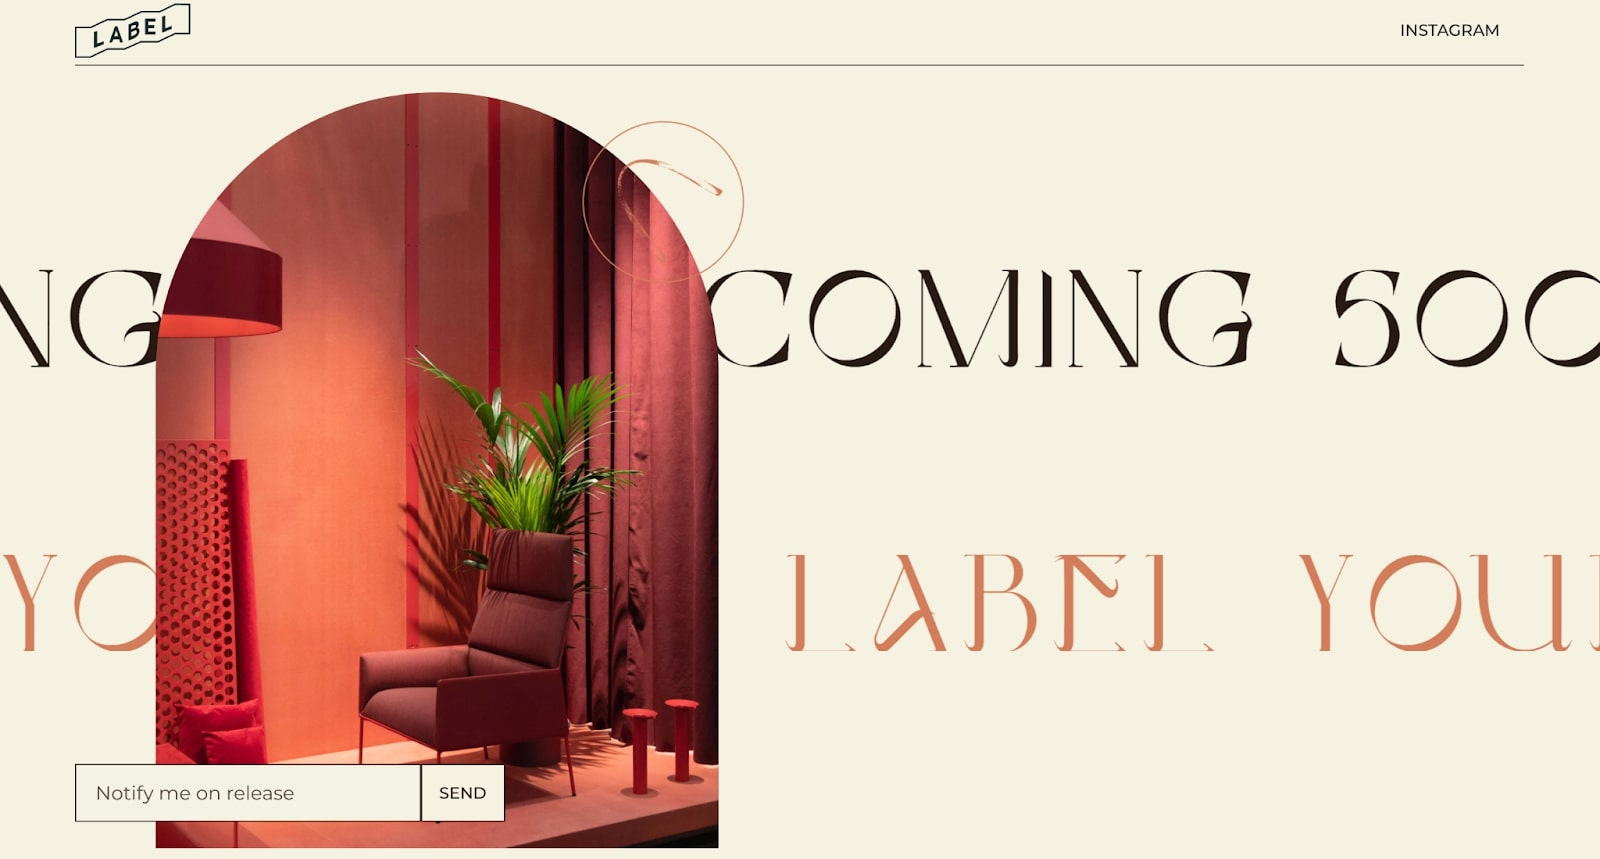 An image of Label Clothing's website.